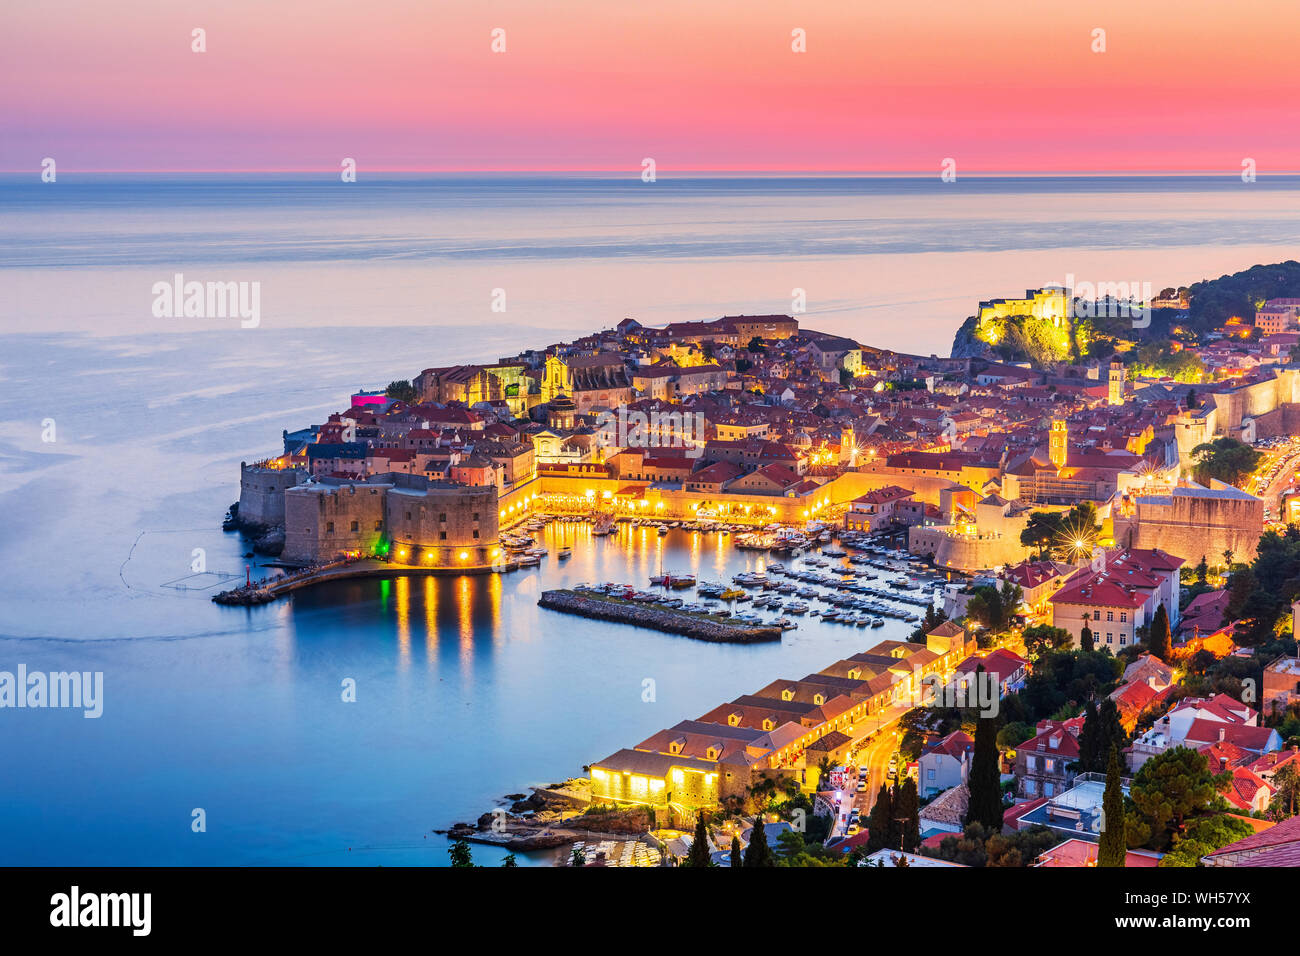 Dubrovnik, Croatia. A panoramic view of the walled city at sunset. Stock Photo